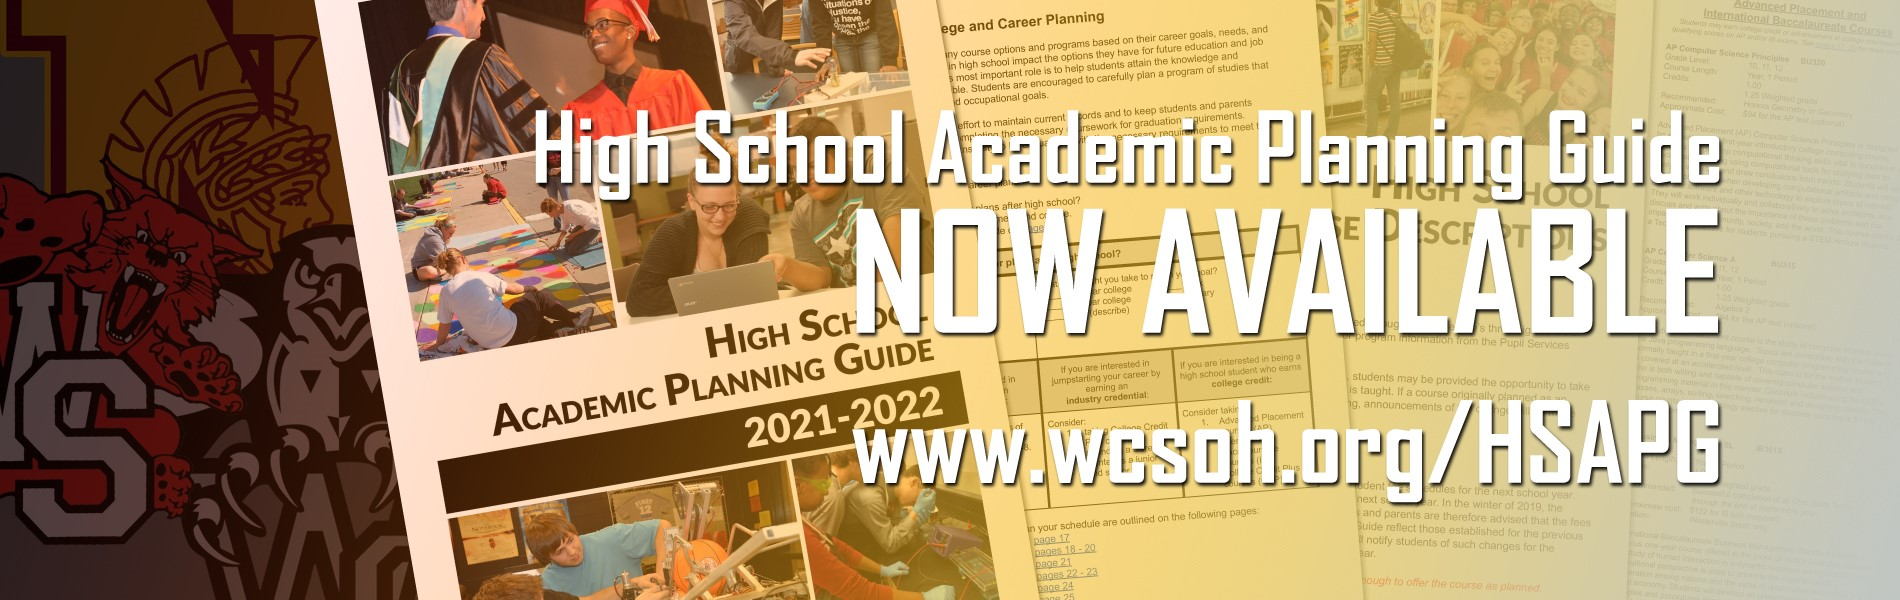 Click the link to view the High School Academic Planning Guide at wcsoh.org/HSAPG